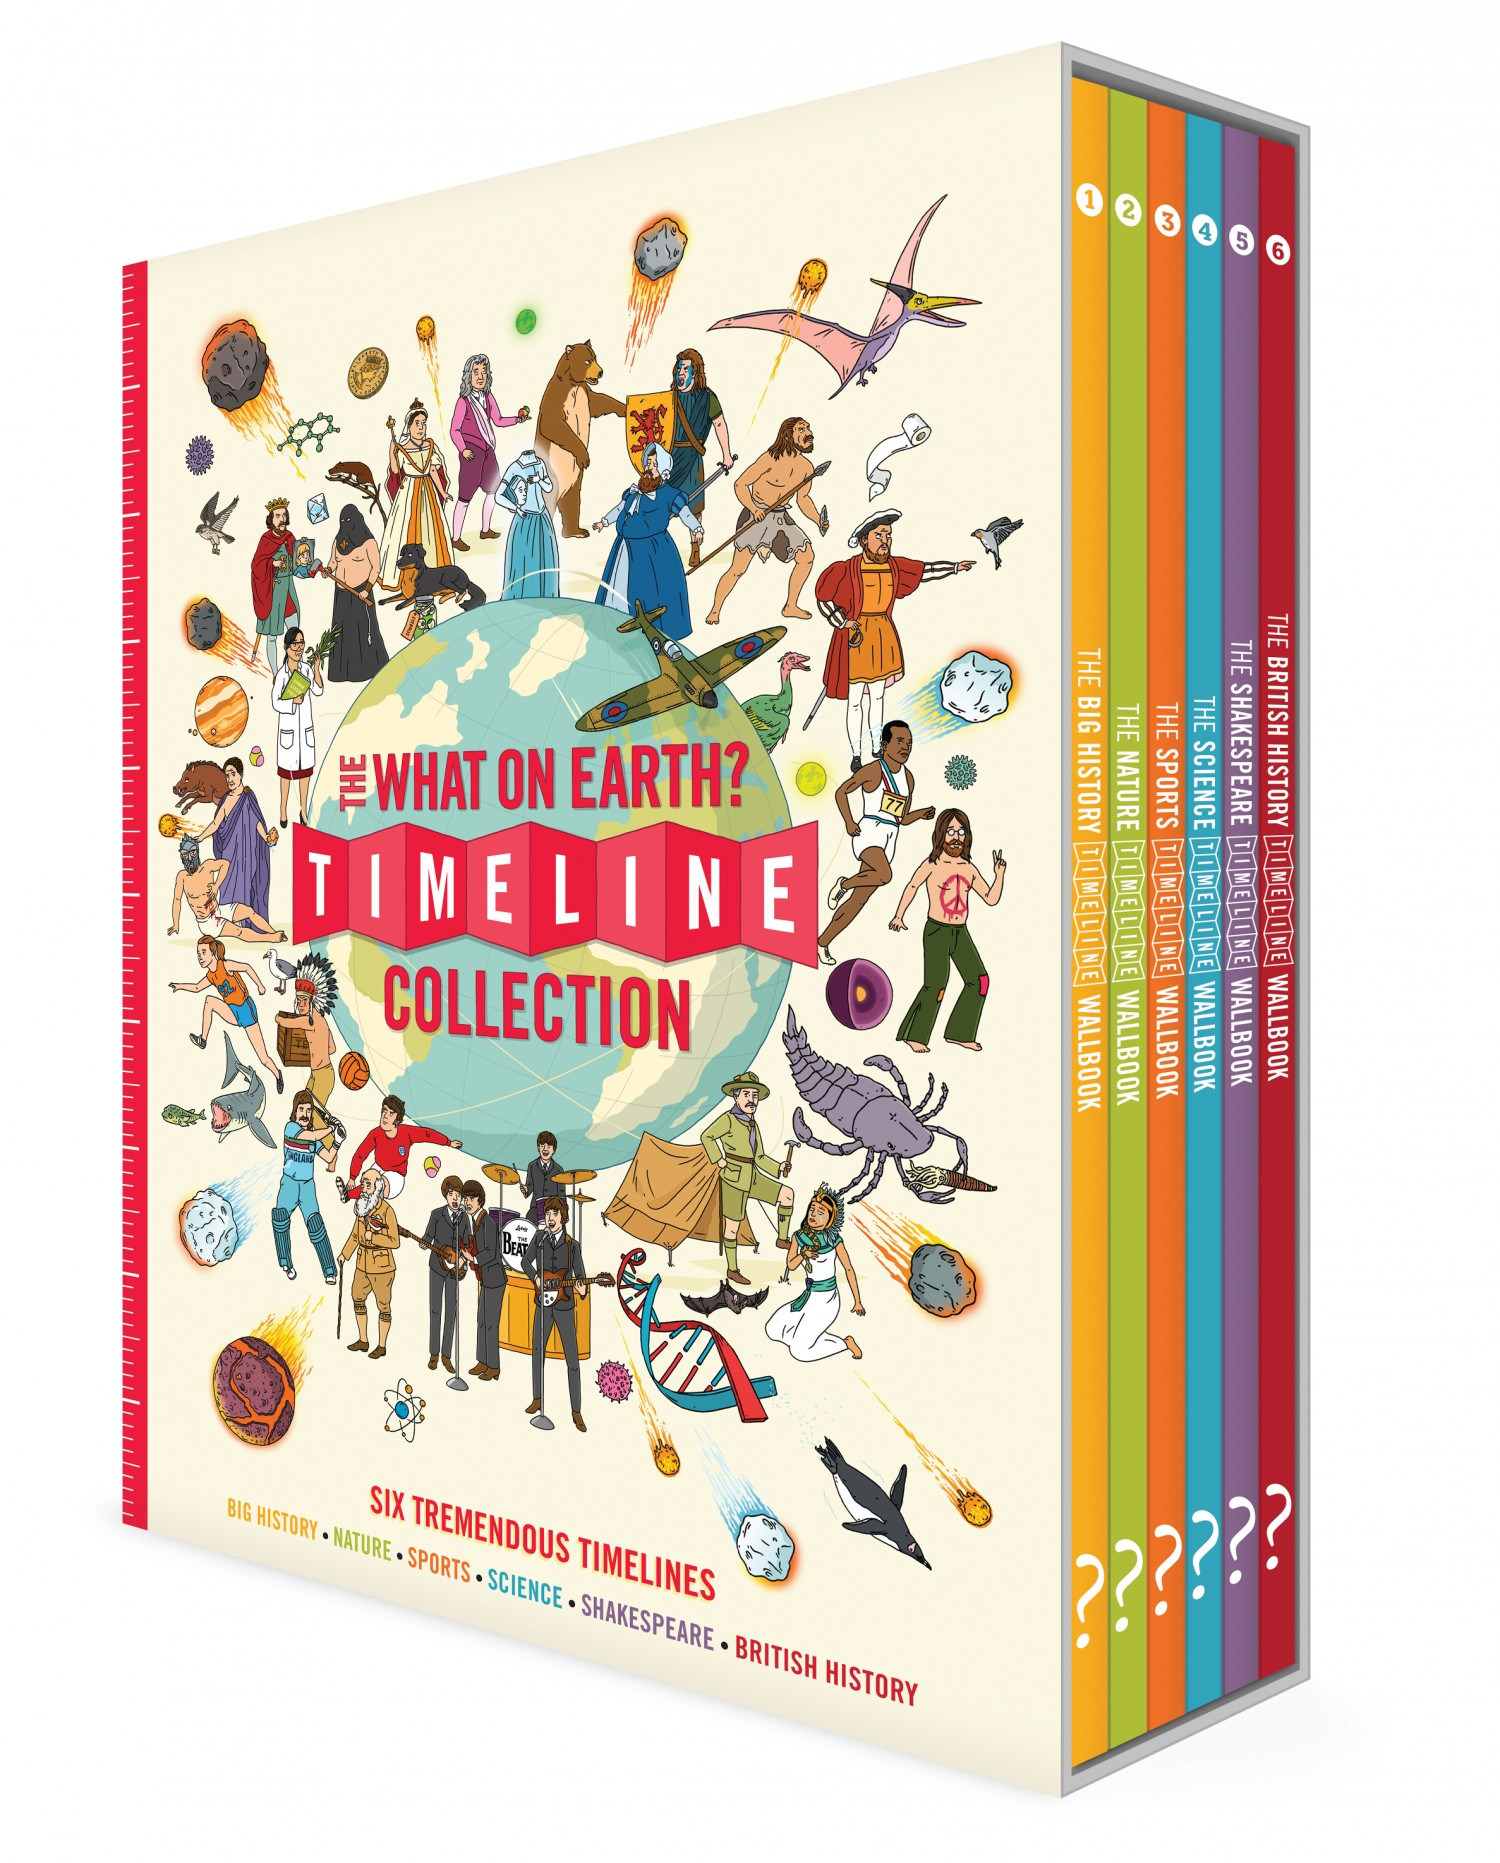 What on Earth? The Timeline Collection Book Cover